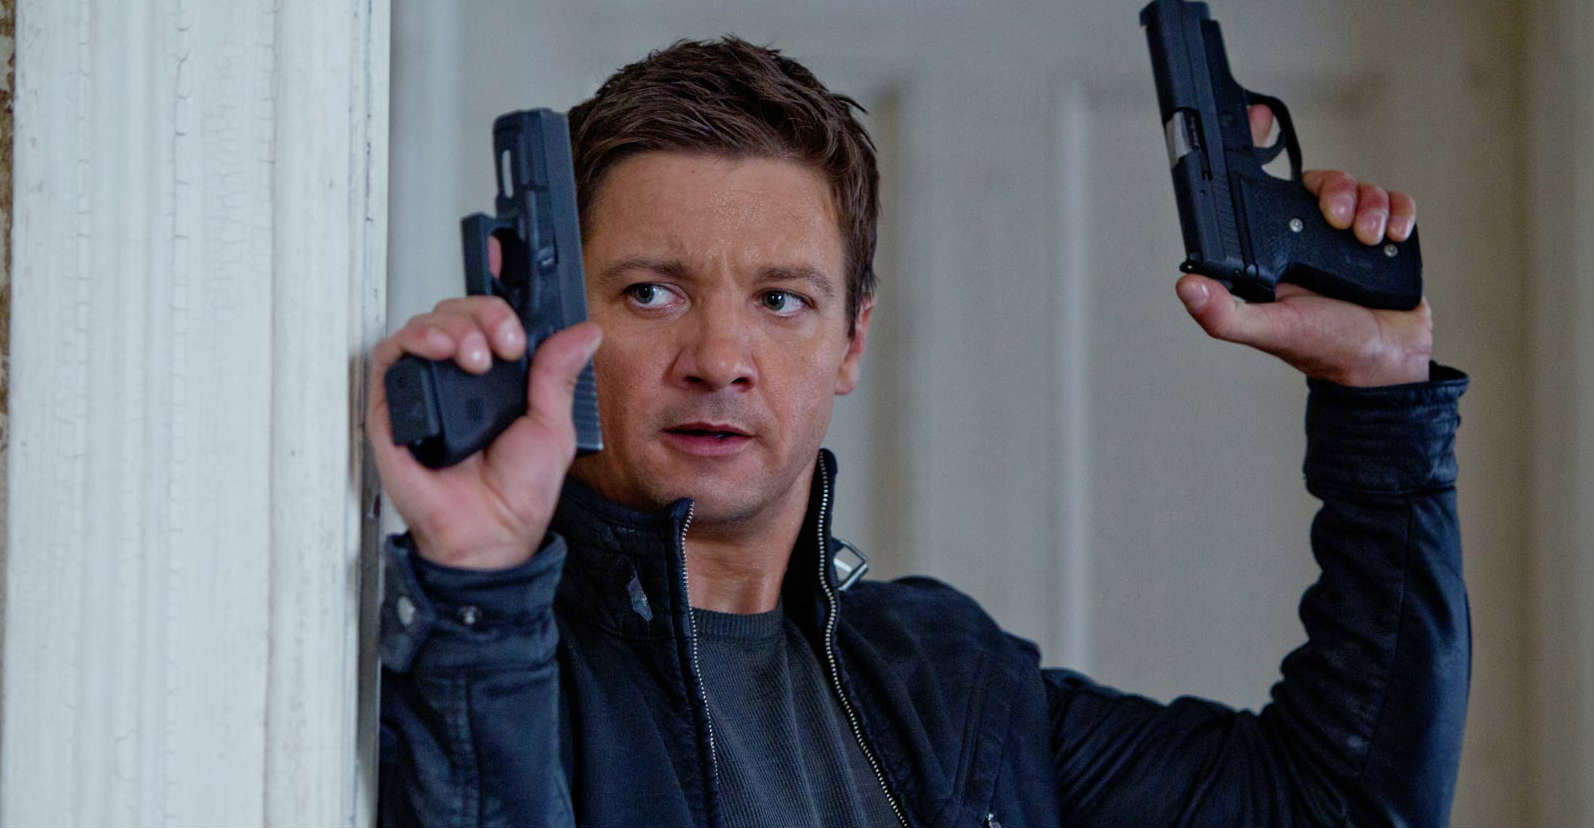 Aaron Cross (Jeremy Renner) er klar til at splitte CIA's agenter ad. Photo courtesy of UIP.